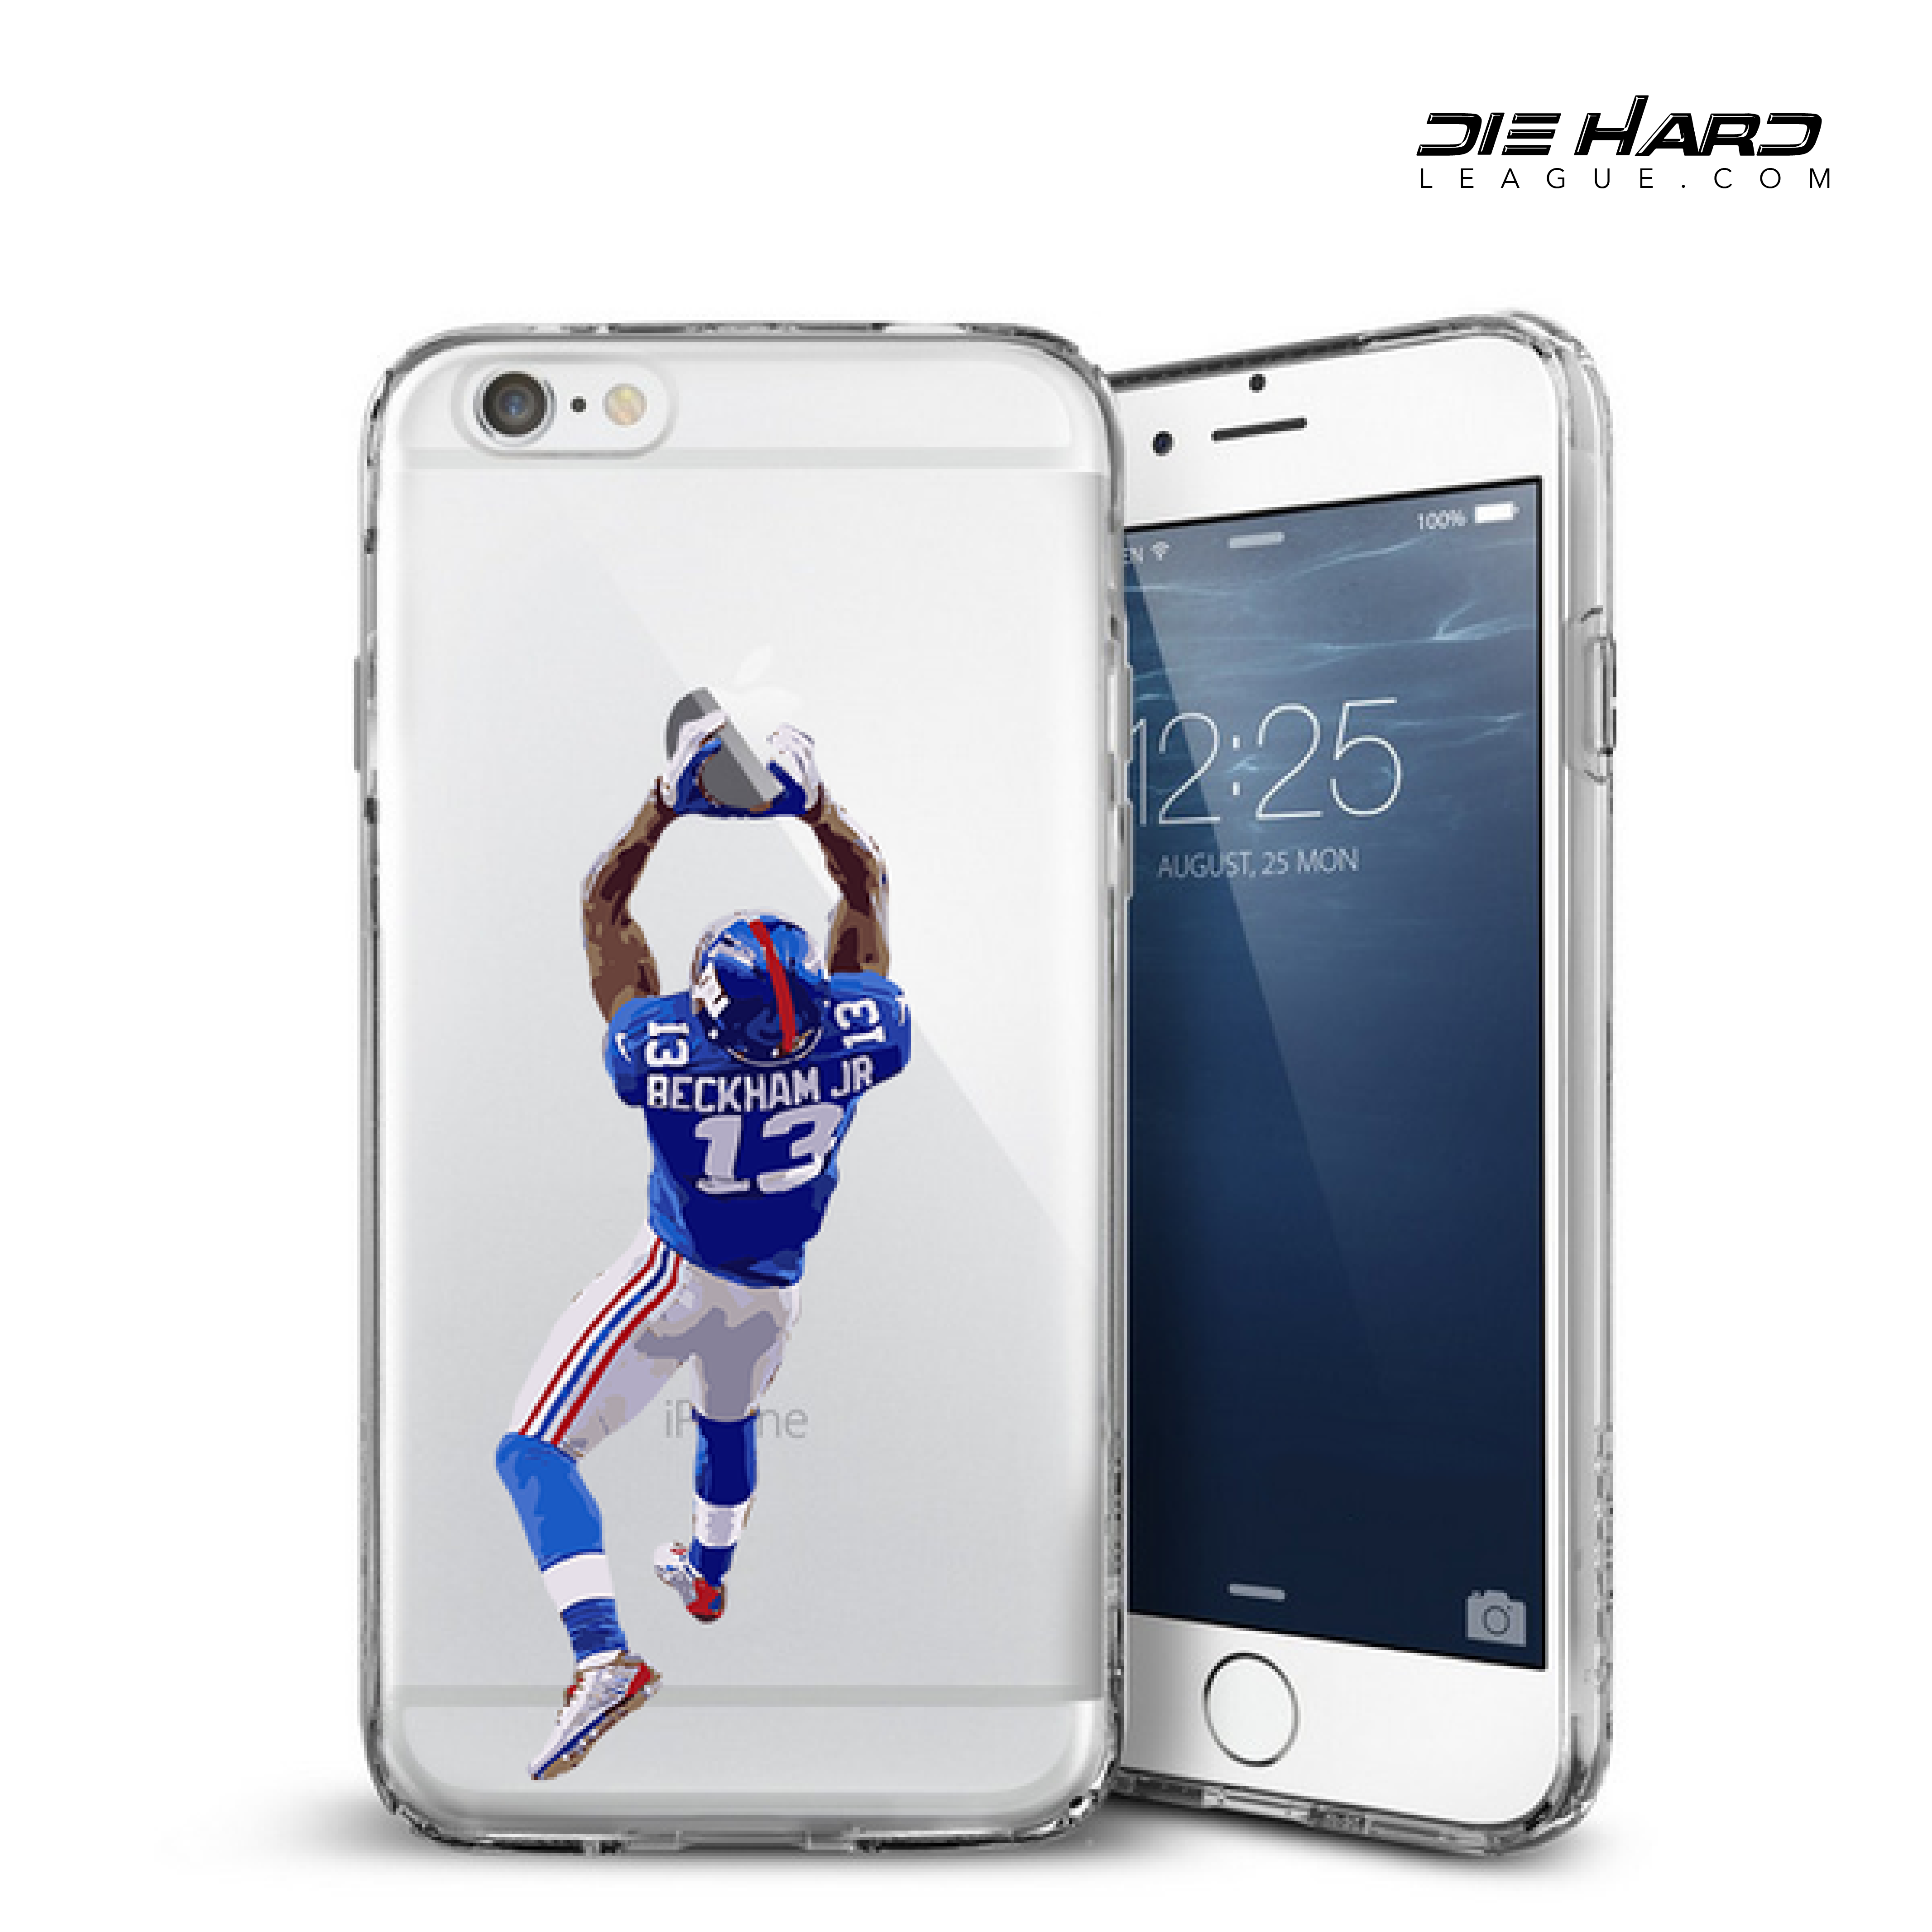 pretty nice 4567b c8ed0 New York Giants Odell Beckham Jr iPhone 6 Case | NFL Apparel | NFL ...